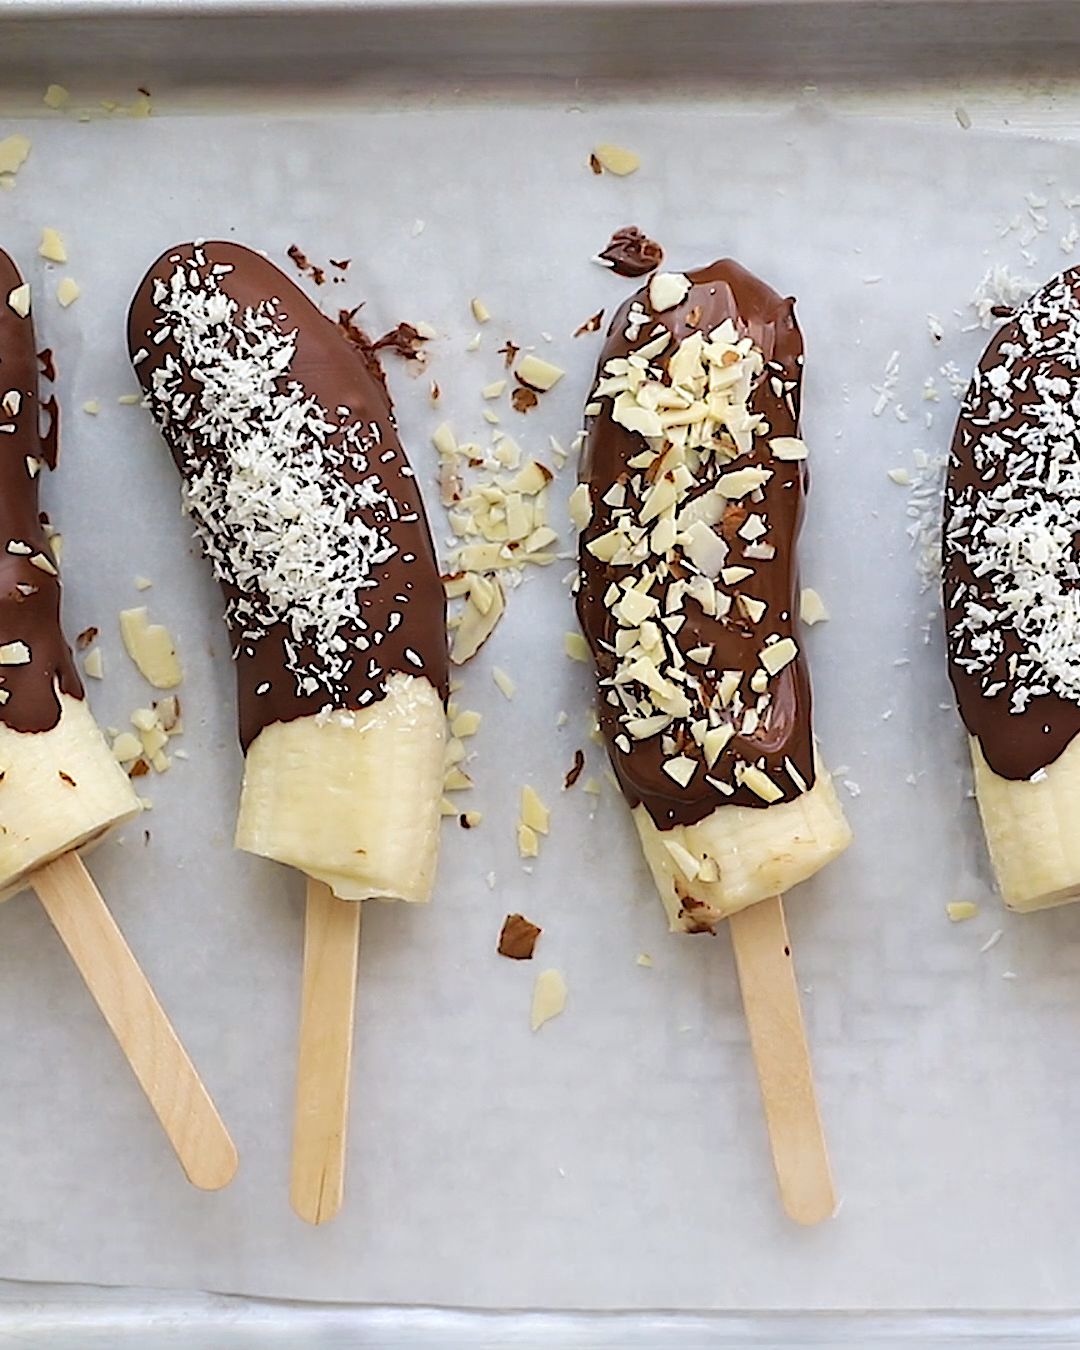 These healthy chocolate covered banana pops are made with just four ingredients. Simple, refreshing and the perfect cool and creamy treat for summer.